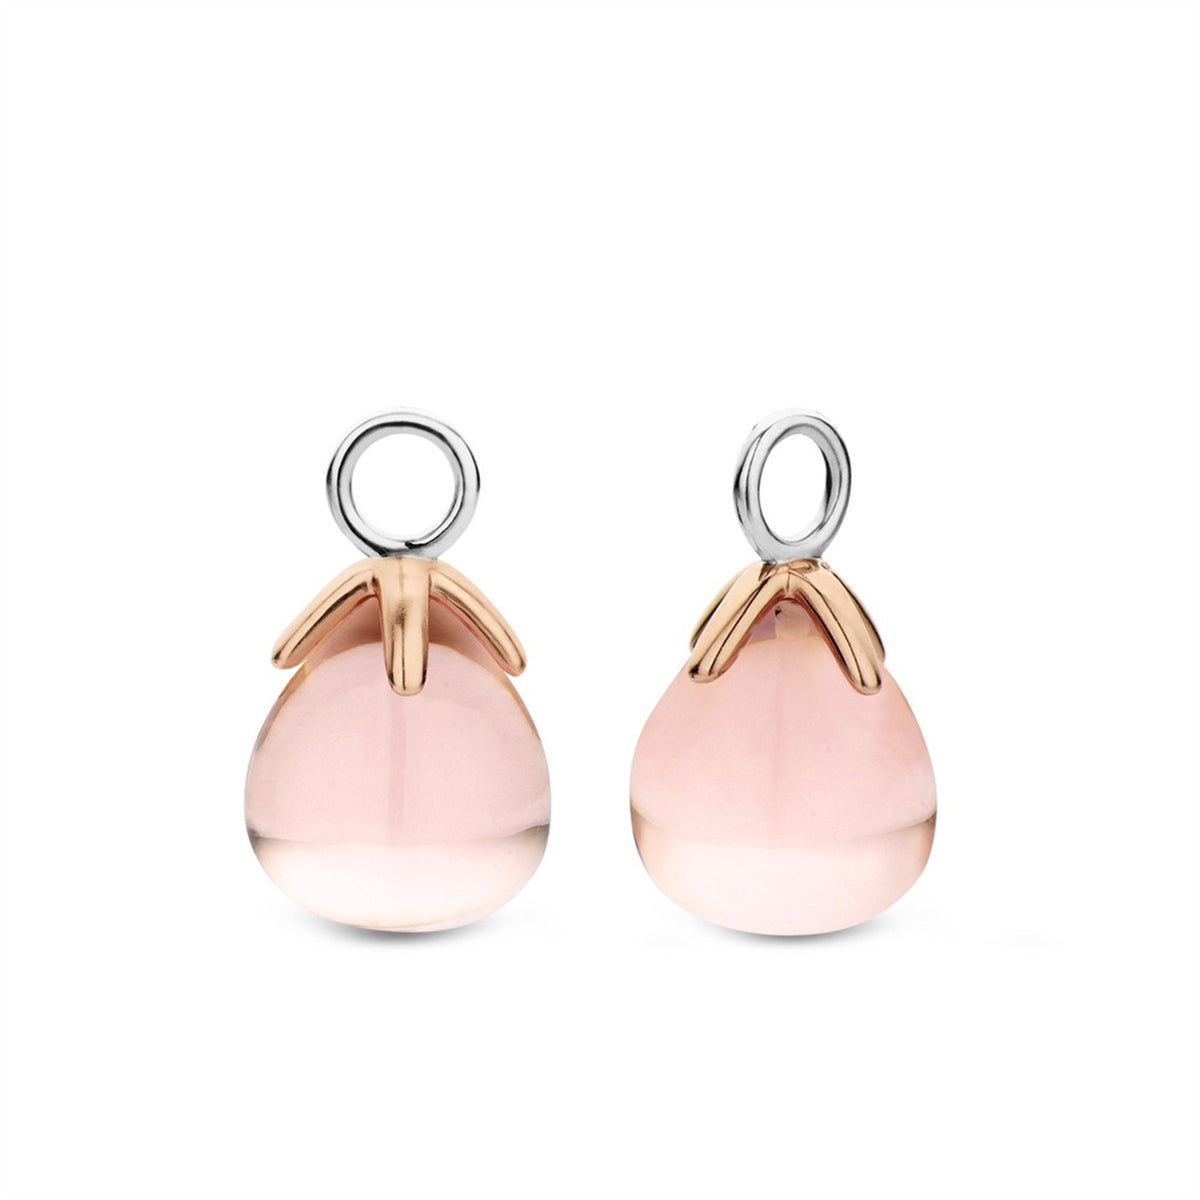 TI SENTO Sterling Silver and Rose Tone Ear Charms with Pink Stone Drops